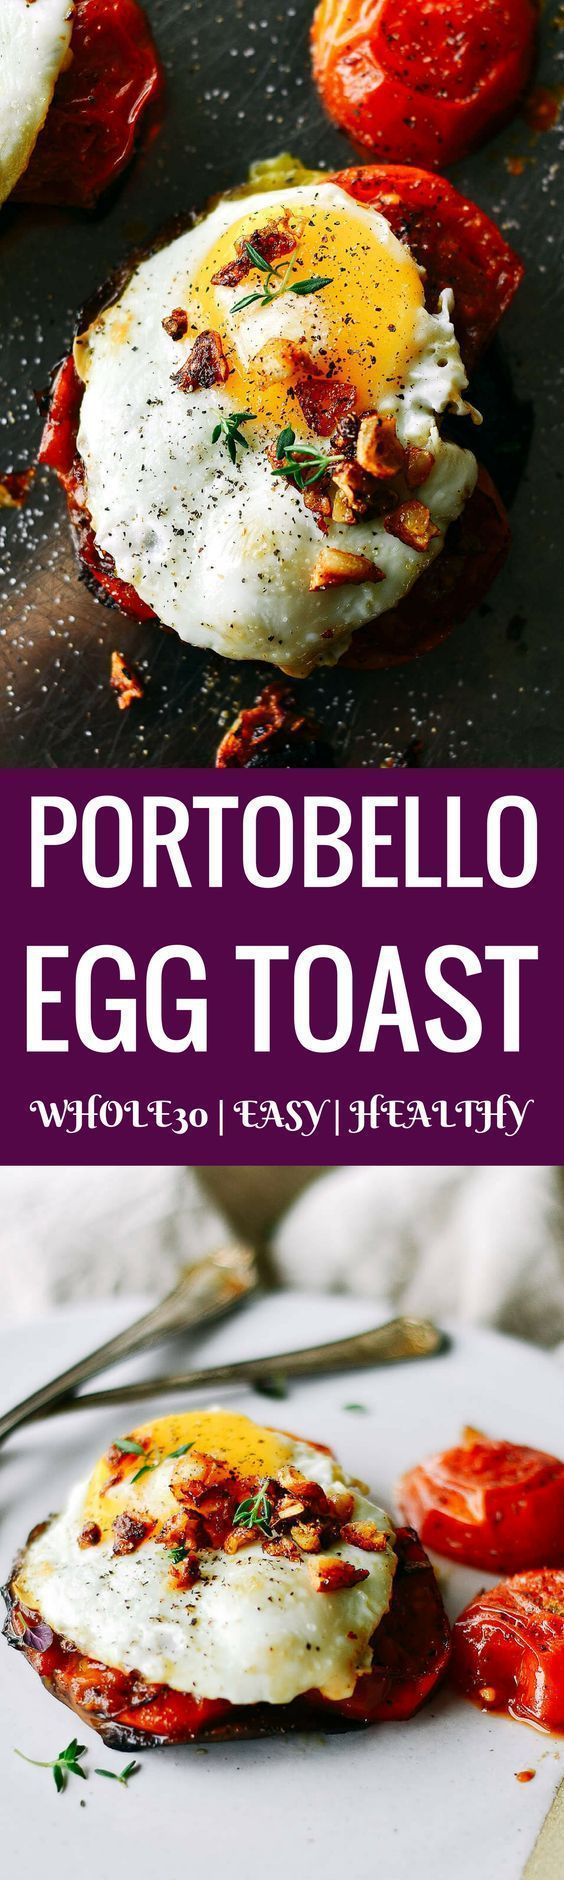 This portobello egg toast looks so YUMMY! I can't wait to try these and all the other amazing recipes!